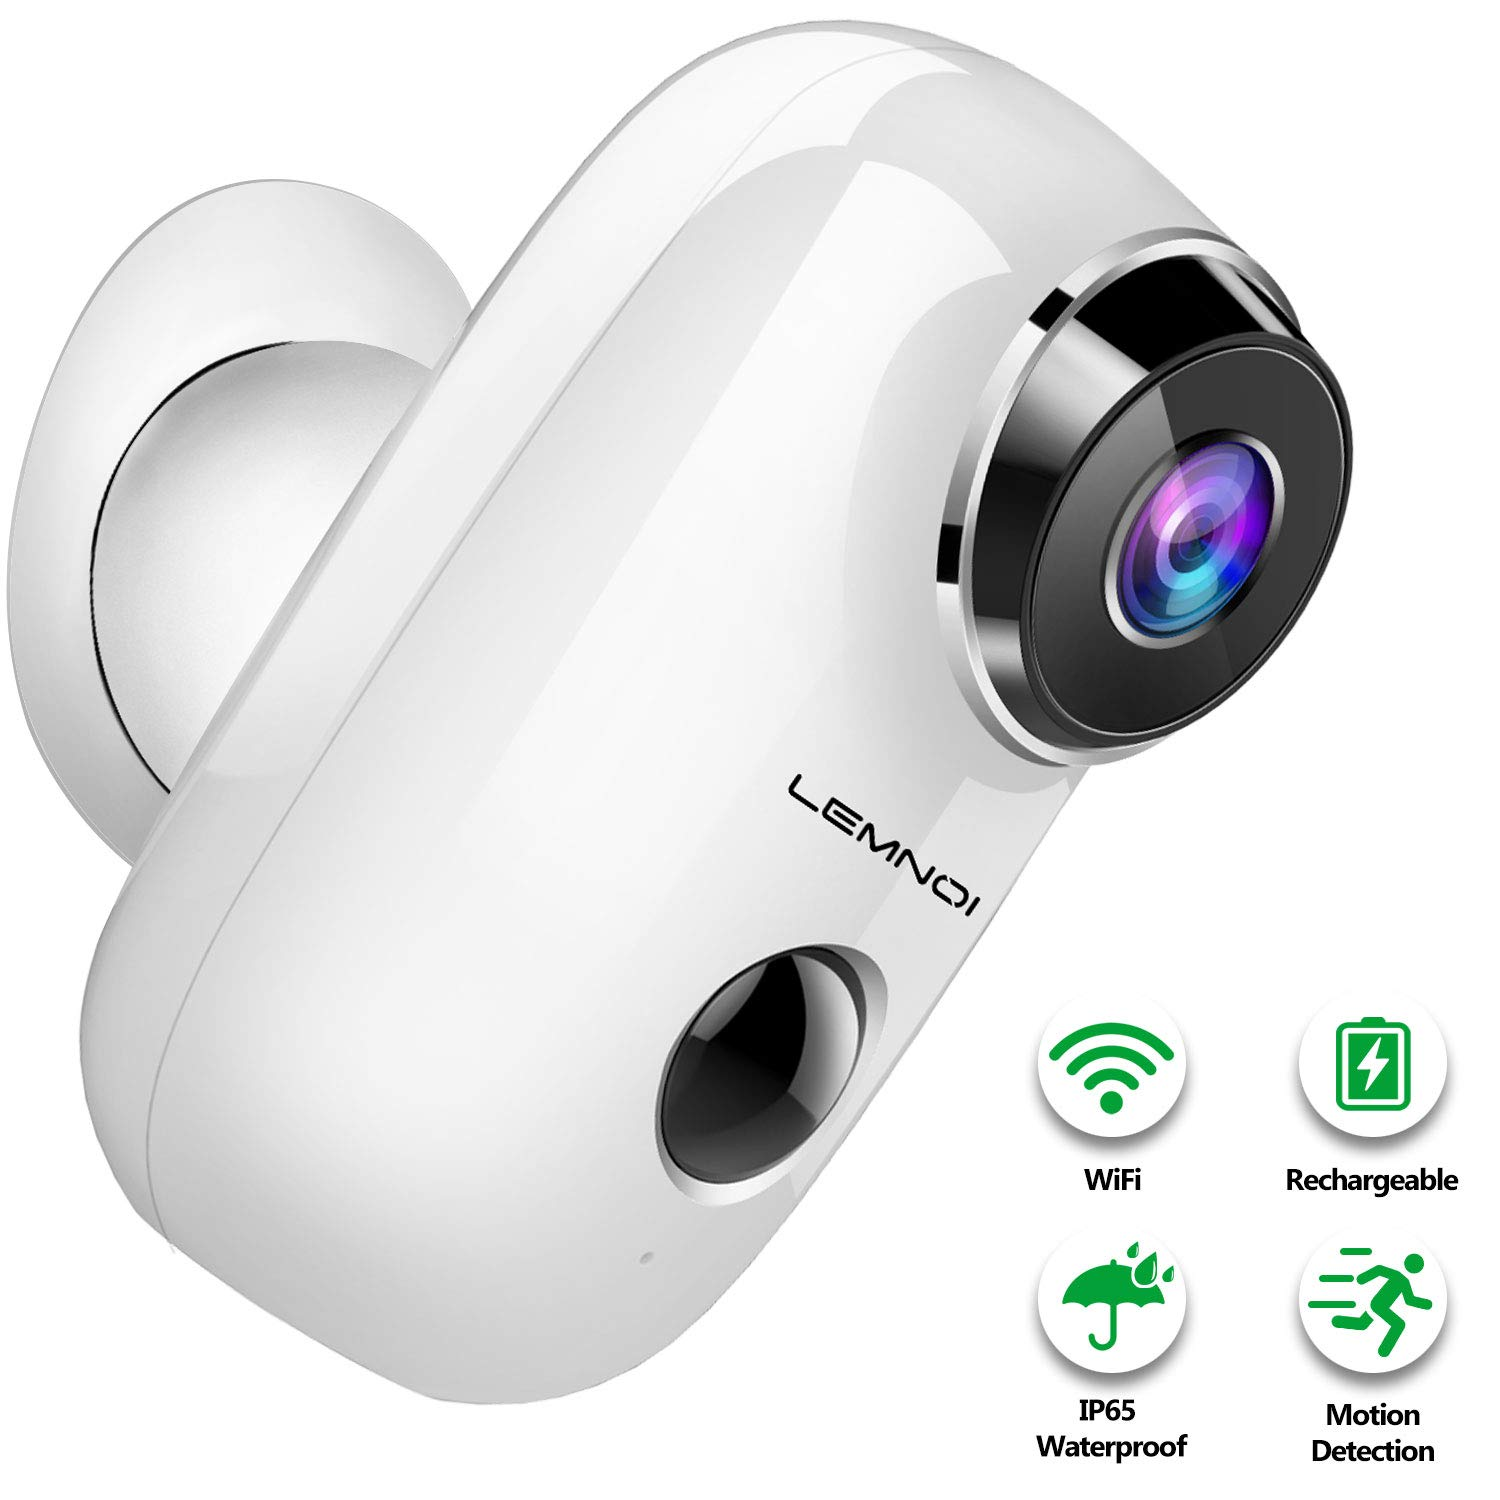 Ctronics 1080P Outdoor Security Camera Rechargeable Powered Battery WiFi IP Camera with Motion Detection Night Vision IP66 Waterproof Built-in Micro SD Slot Support 2.4G WiFi